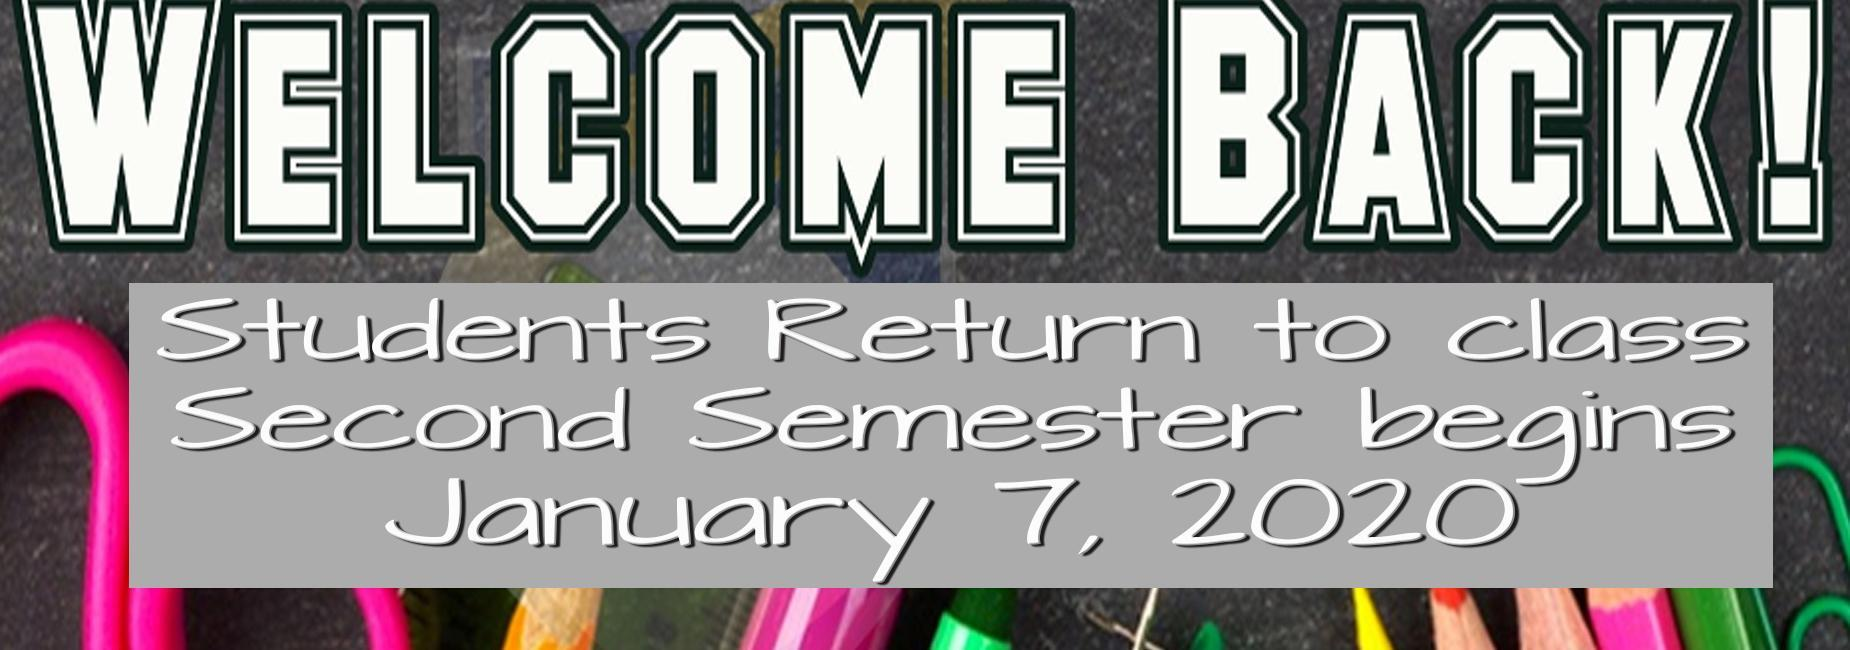 Students Return to class and second semester begins January 7th